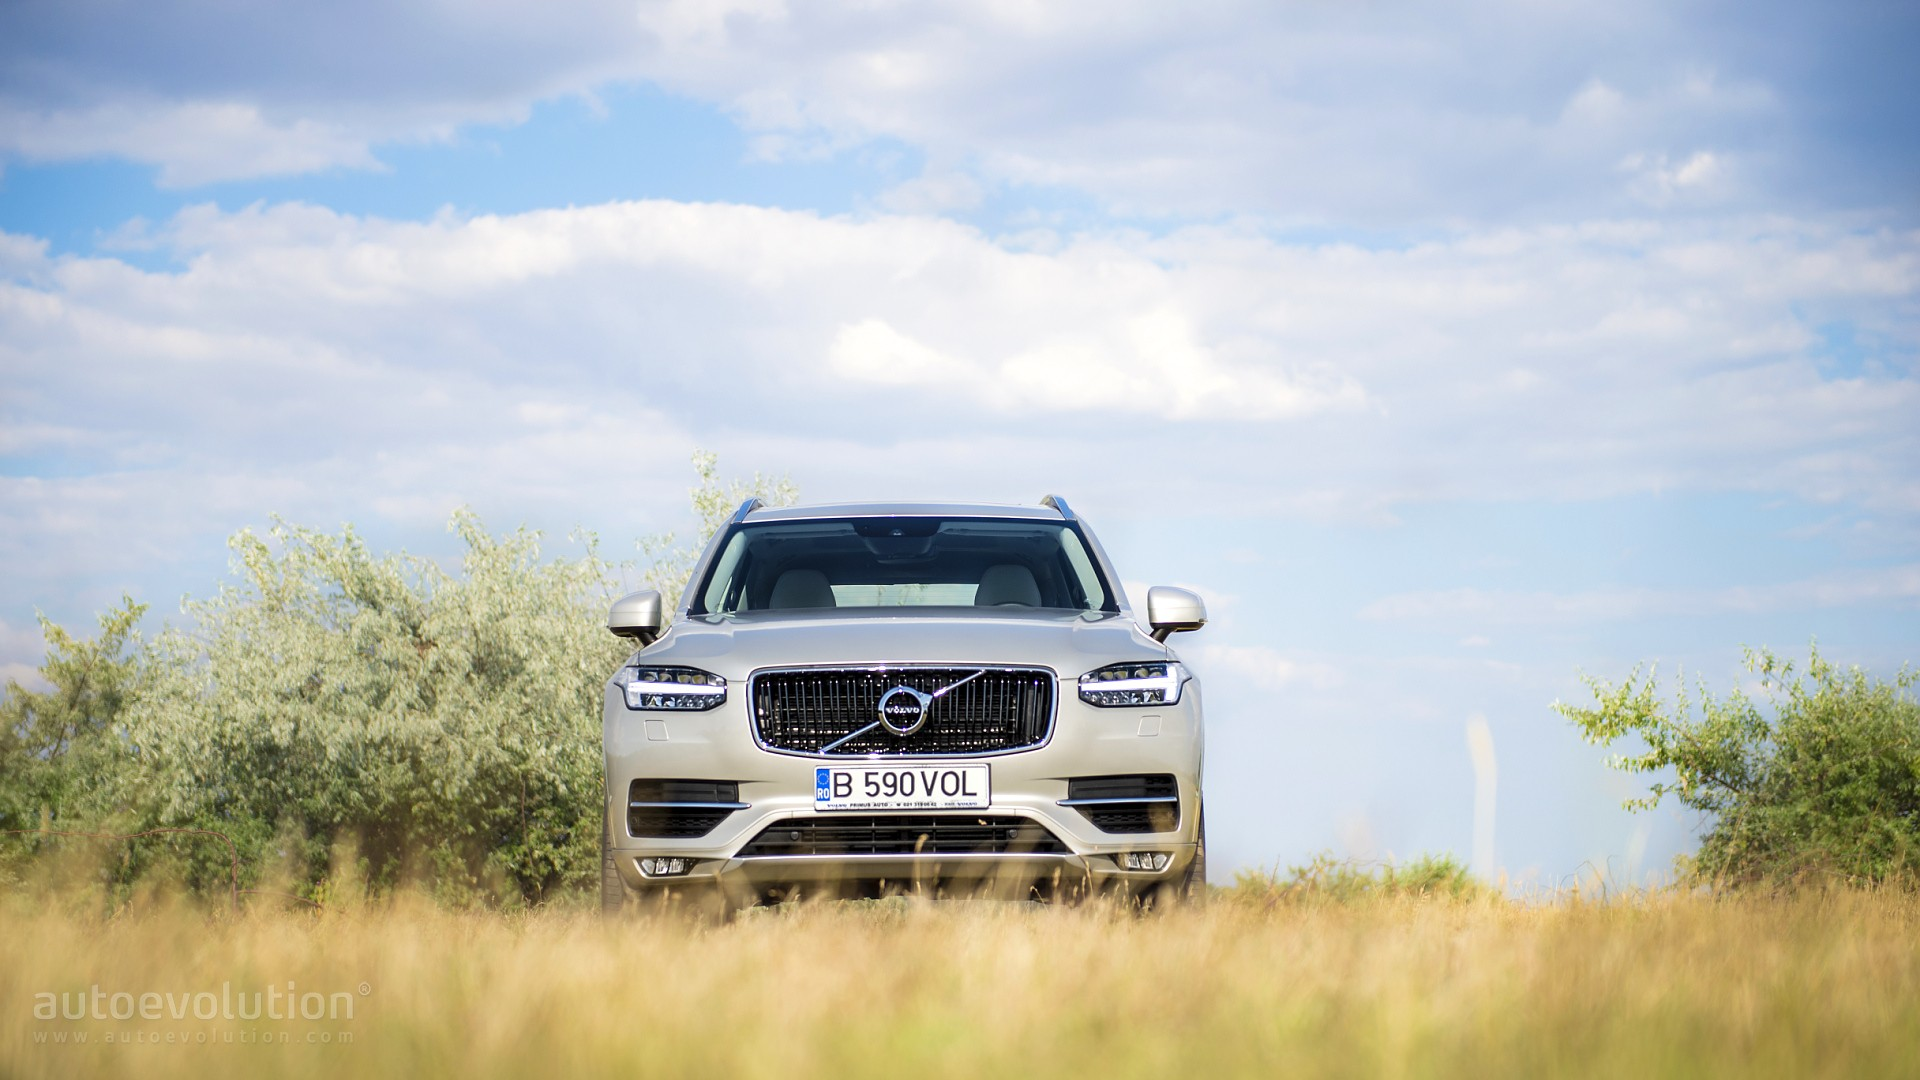 2016 Volvo XC90 HD Wallpapers: Thor 2.0  autoevolution